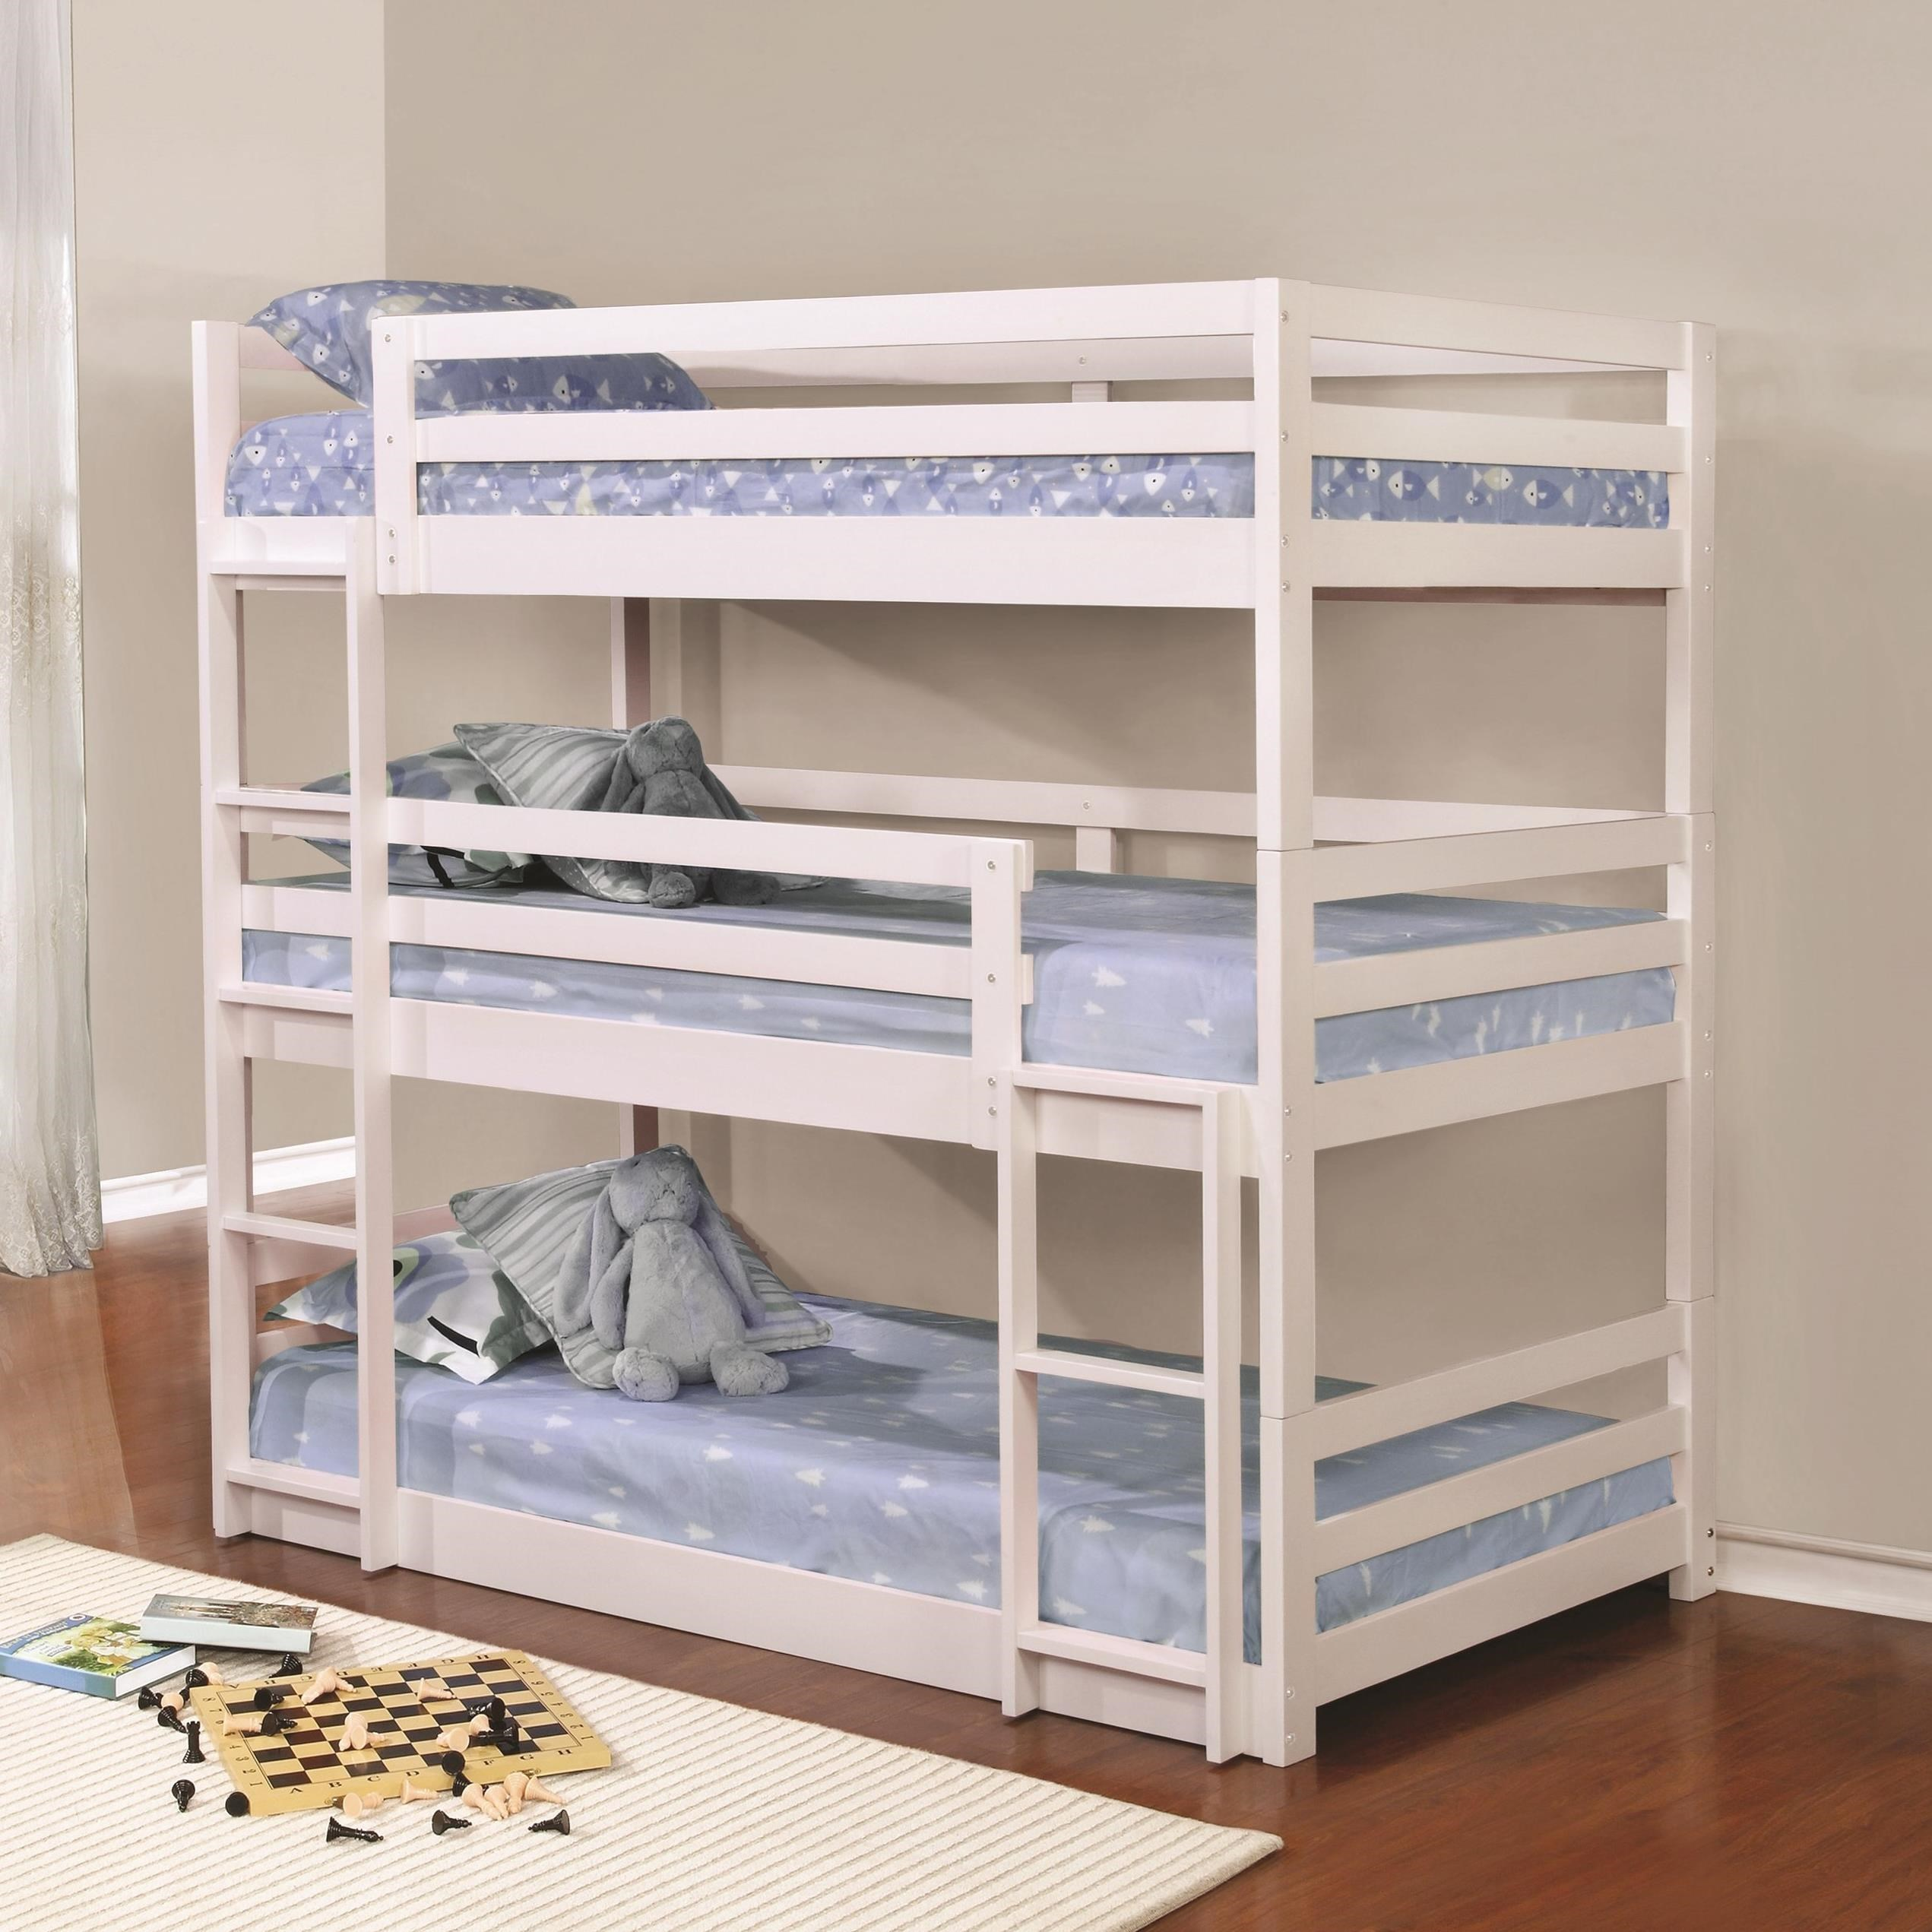 Bed Bunk Coaster Bunks Triple Layer Bunk Bed Value City Furniture